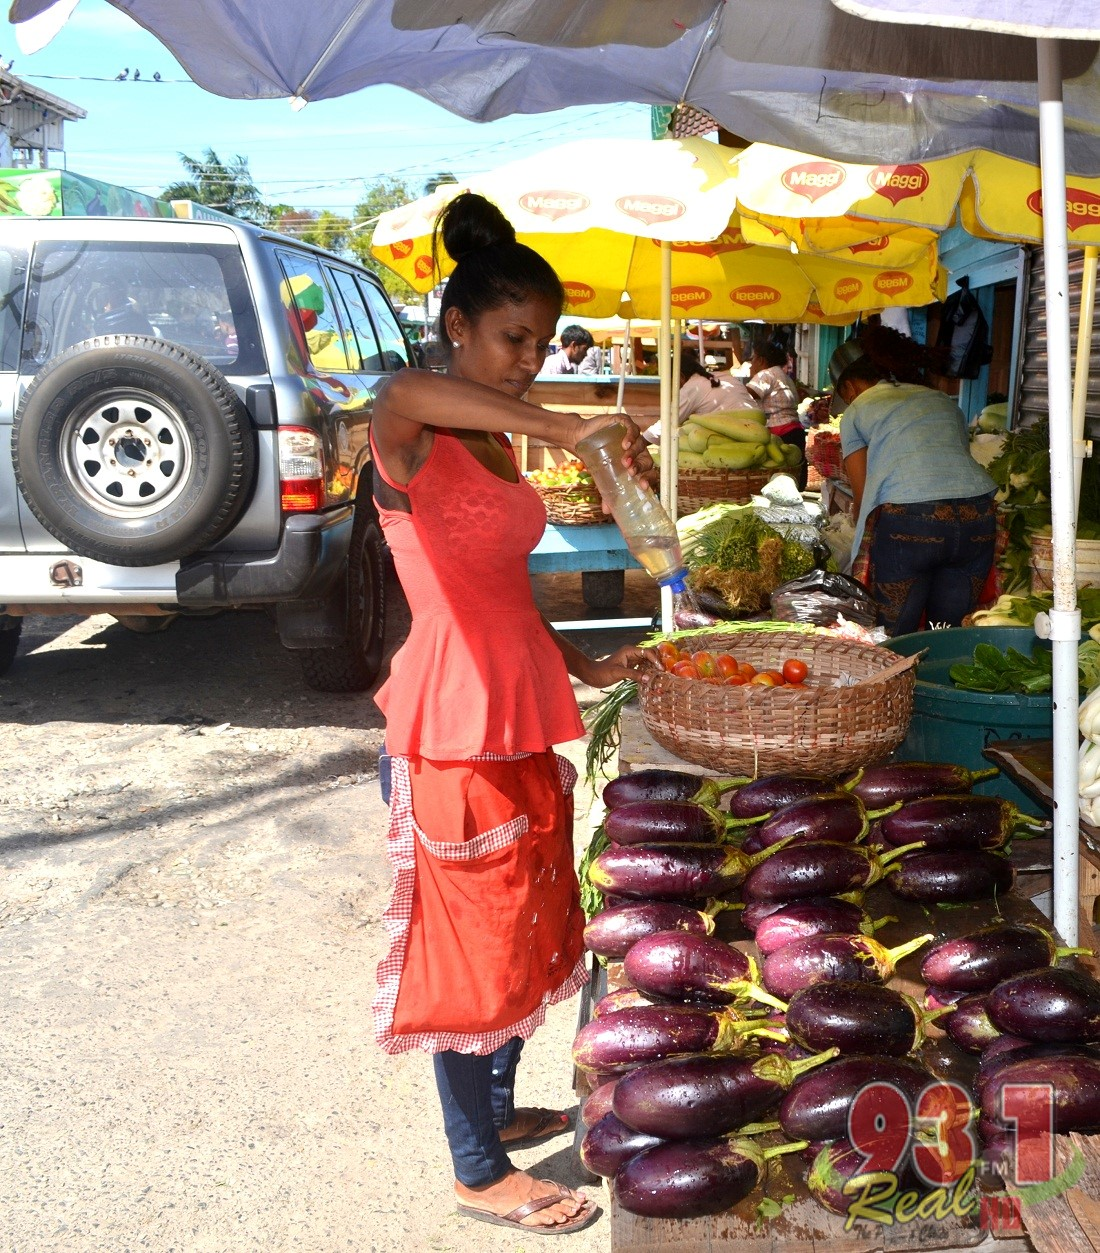 This vendor was keeping her vegetables fresh, a practice utilised at all the markets around the country,especially during the hot weather